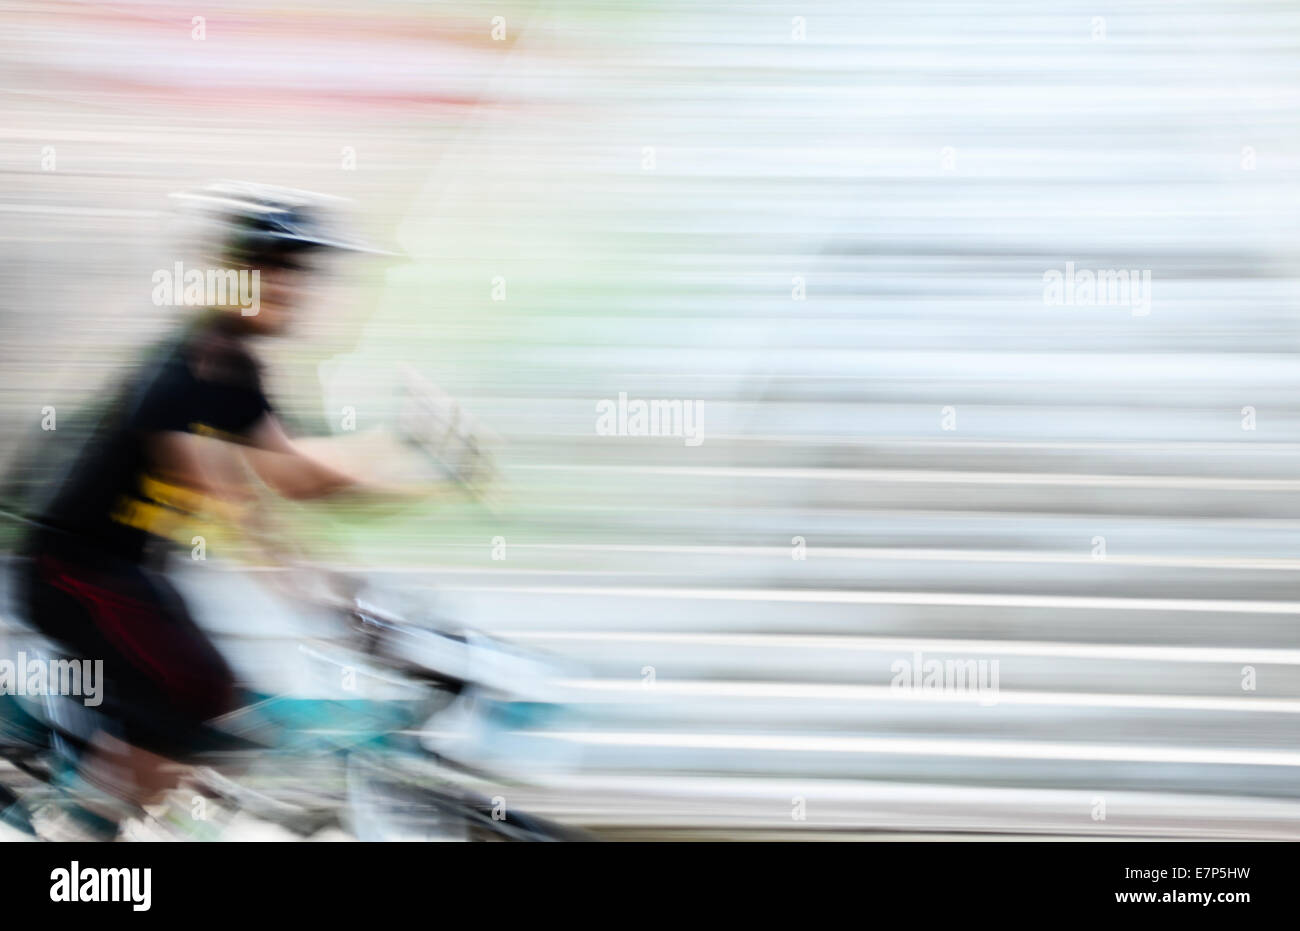 The Speed Bicycle in Motion Blur. - Stock Image